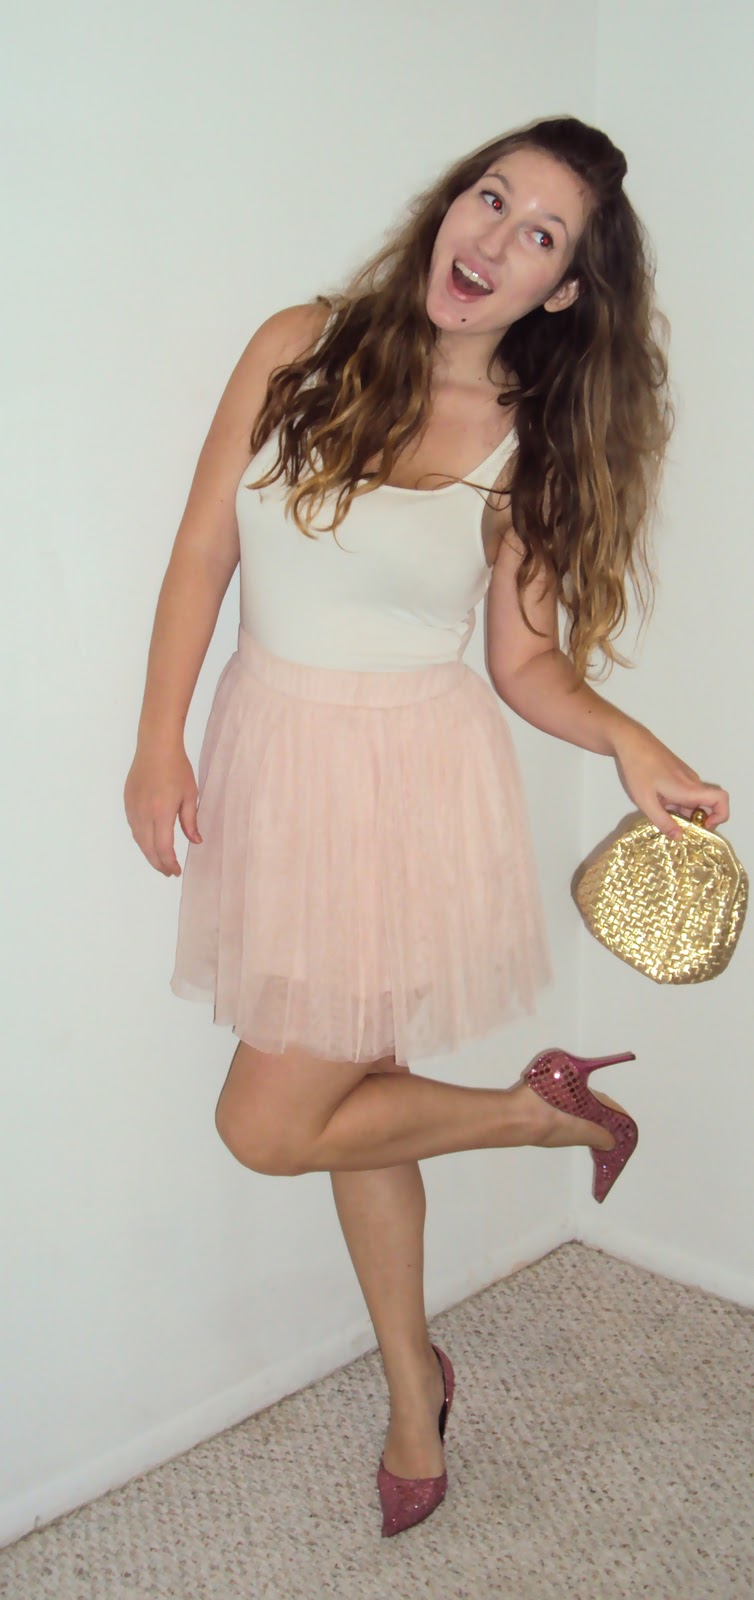 10 last minute quick and easy halloween costume ideas from your 2 carrie bradshaw solutioingenieria Images